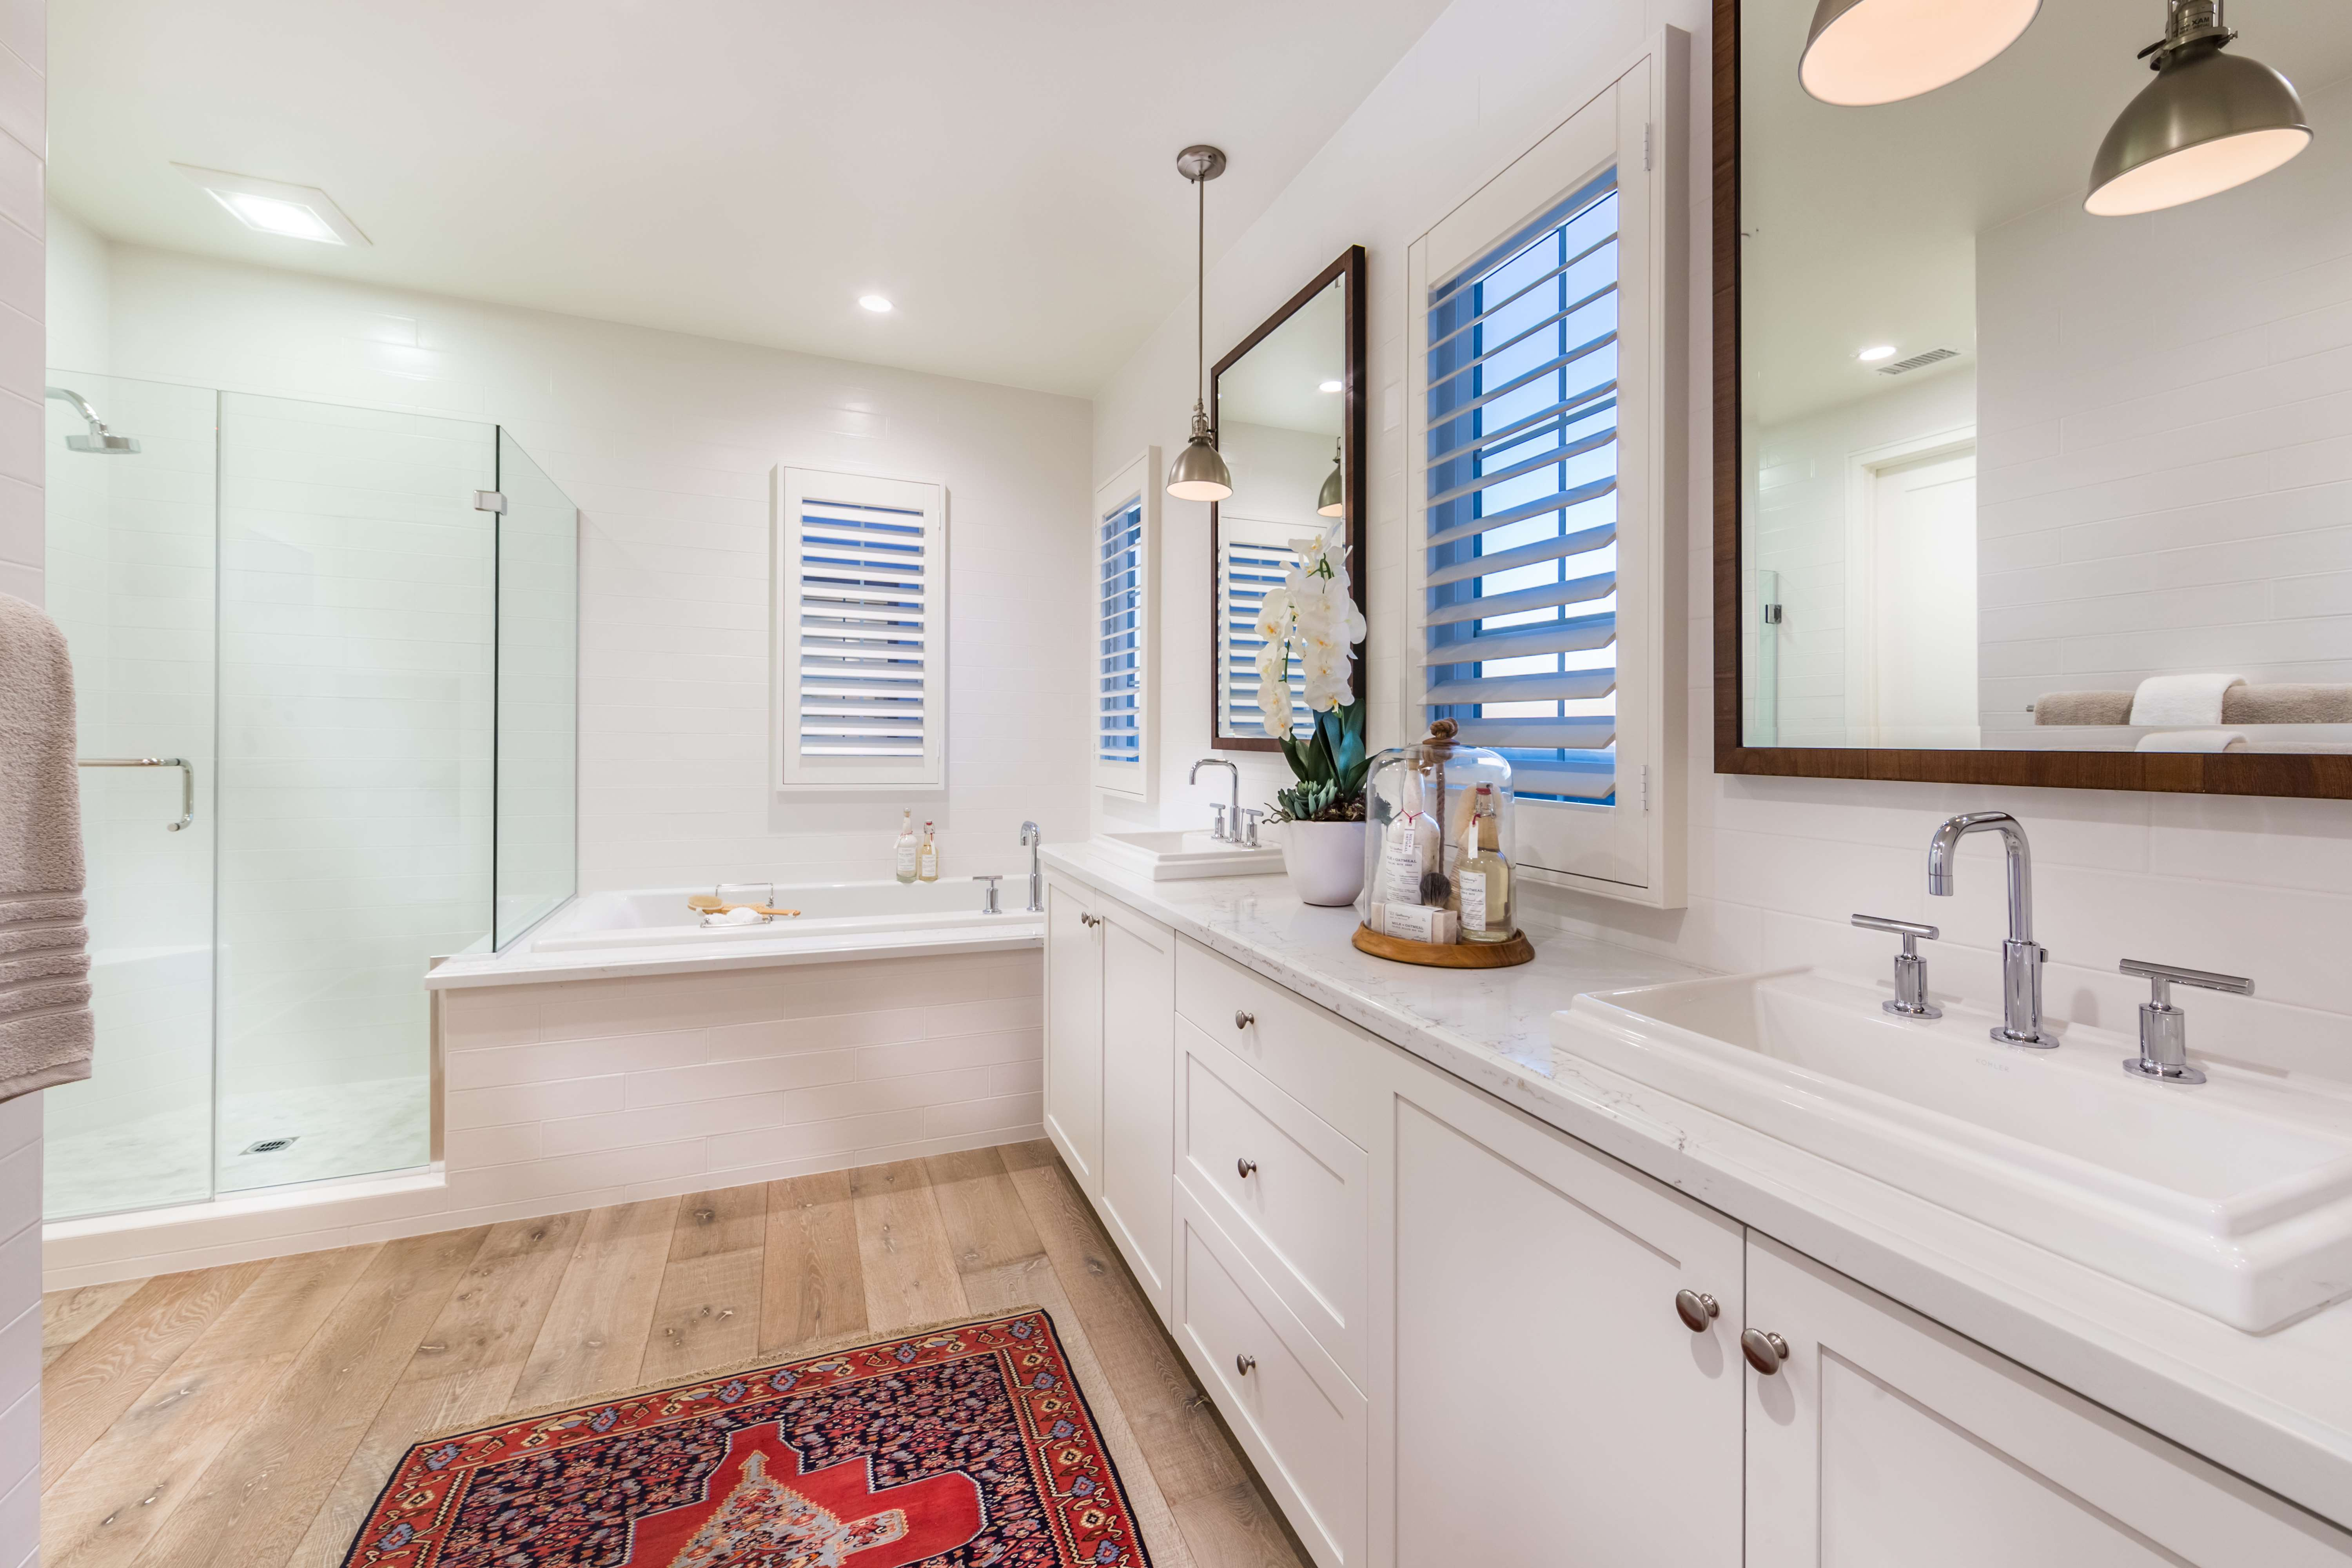 Master Bathroom at Como Residence 2 in Irvine